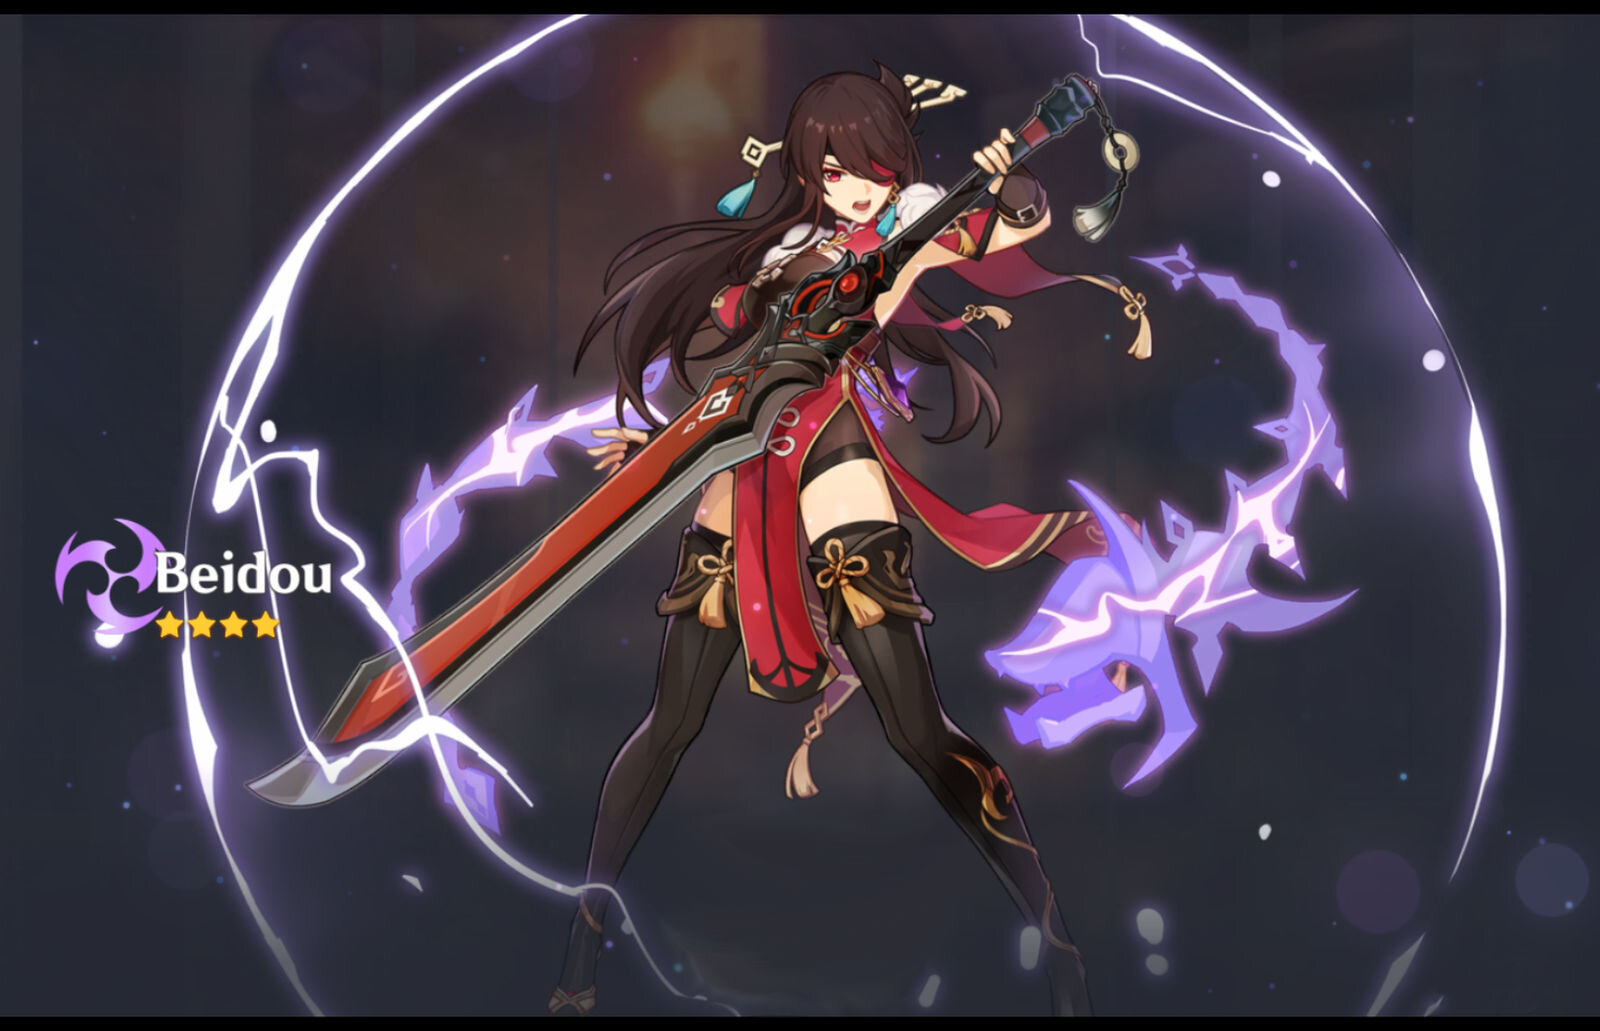 Genshin Impact Version 1.6: Beidou Is in Her Prime All Thanks to the Electro Buff